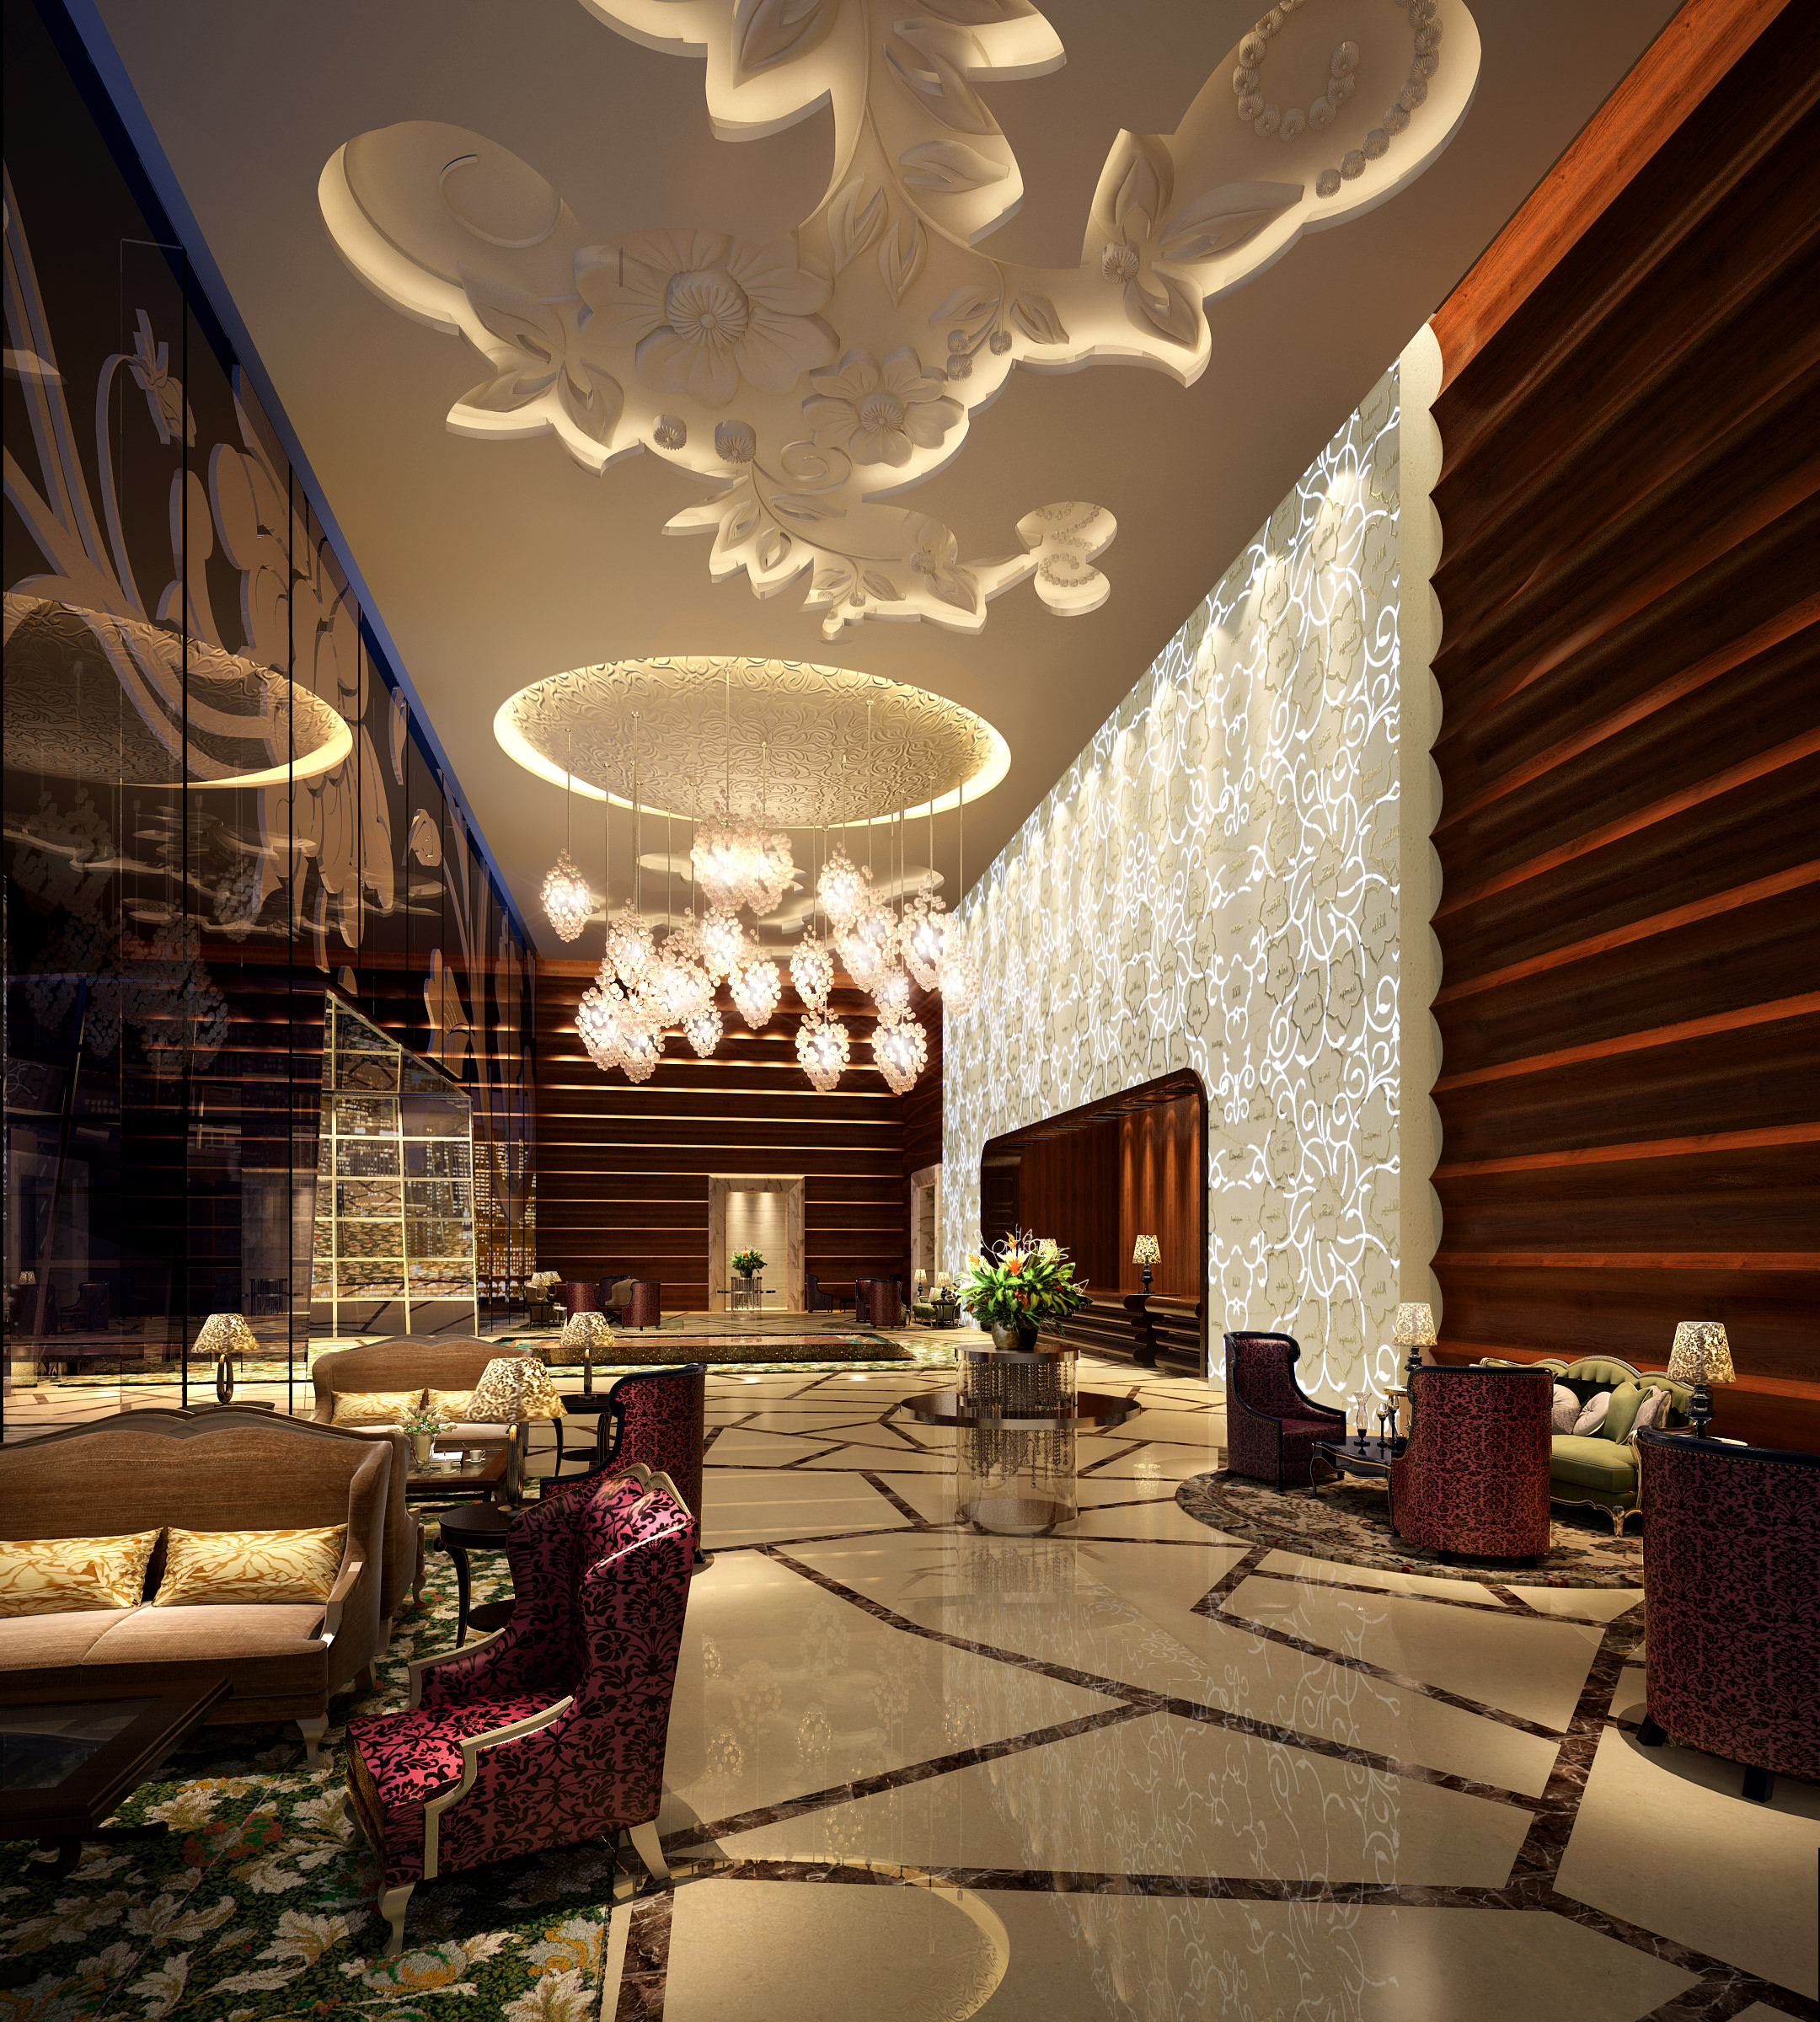 Lobby with exotic ceiling design 3d model max for Villa lobby interior design